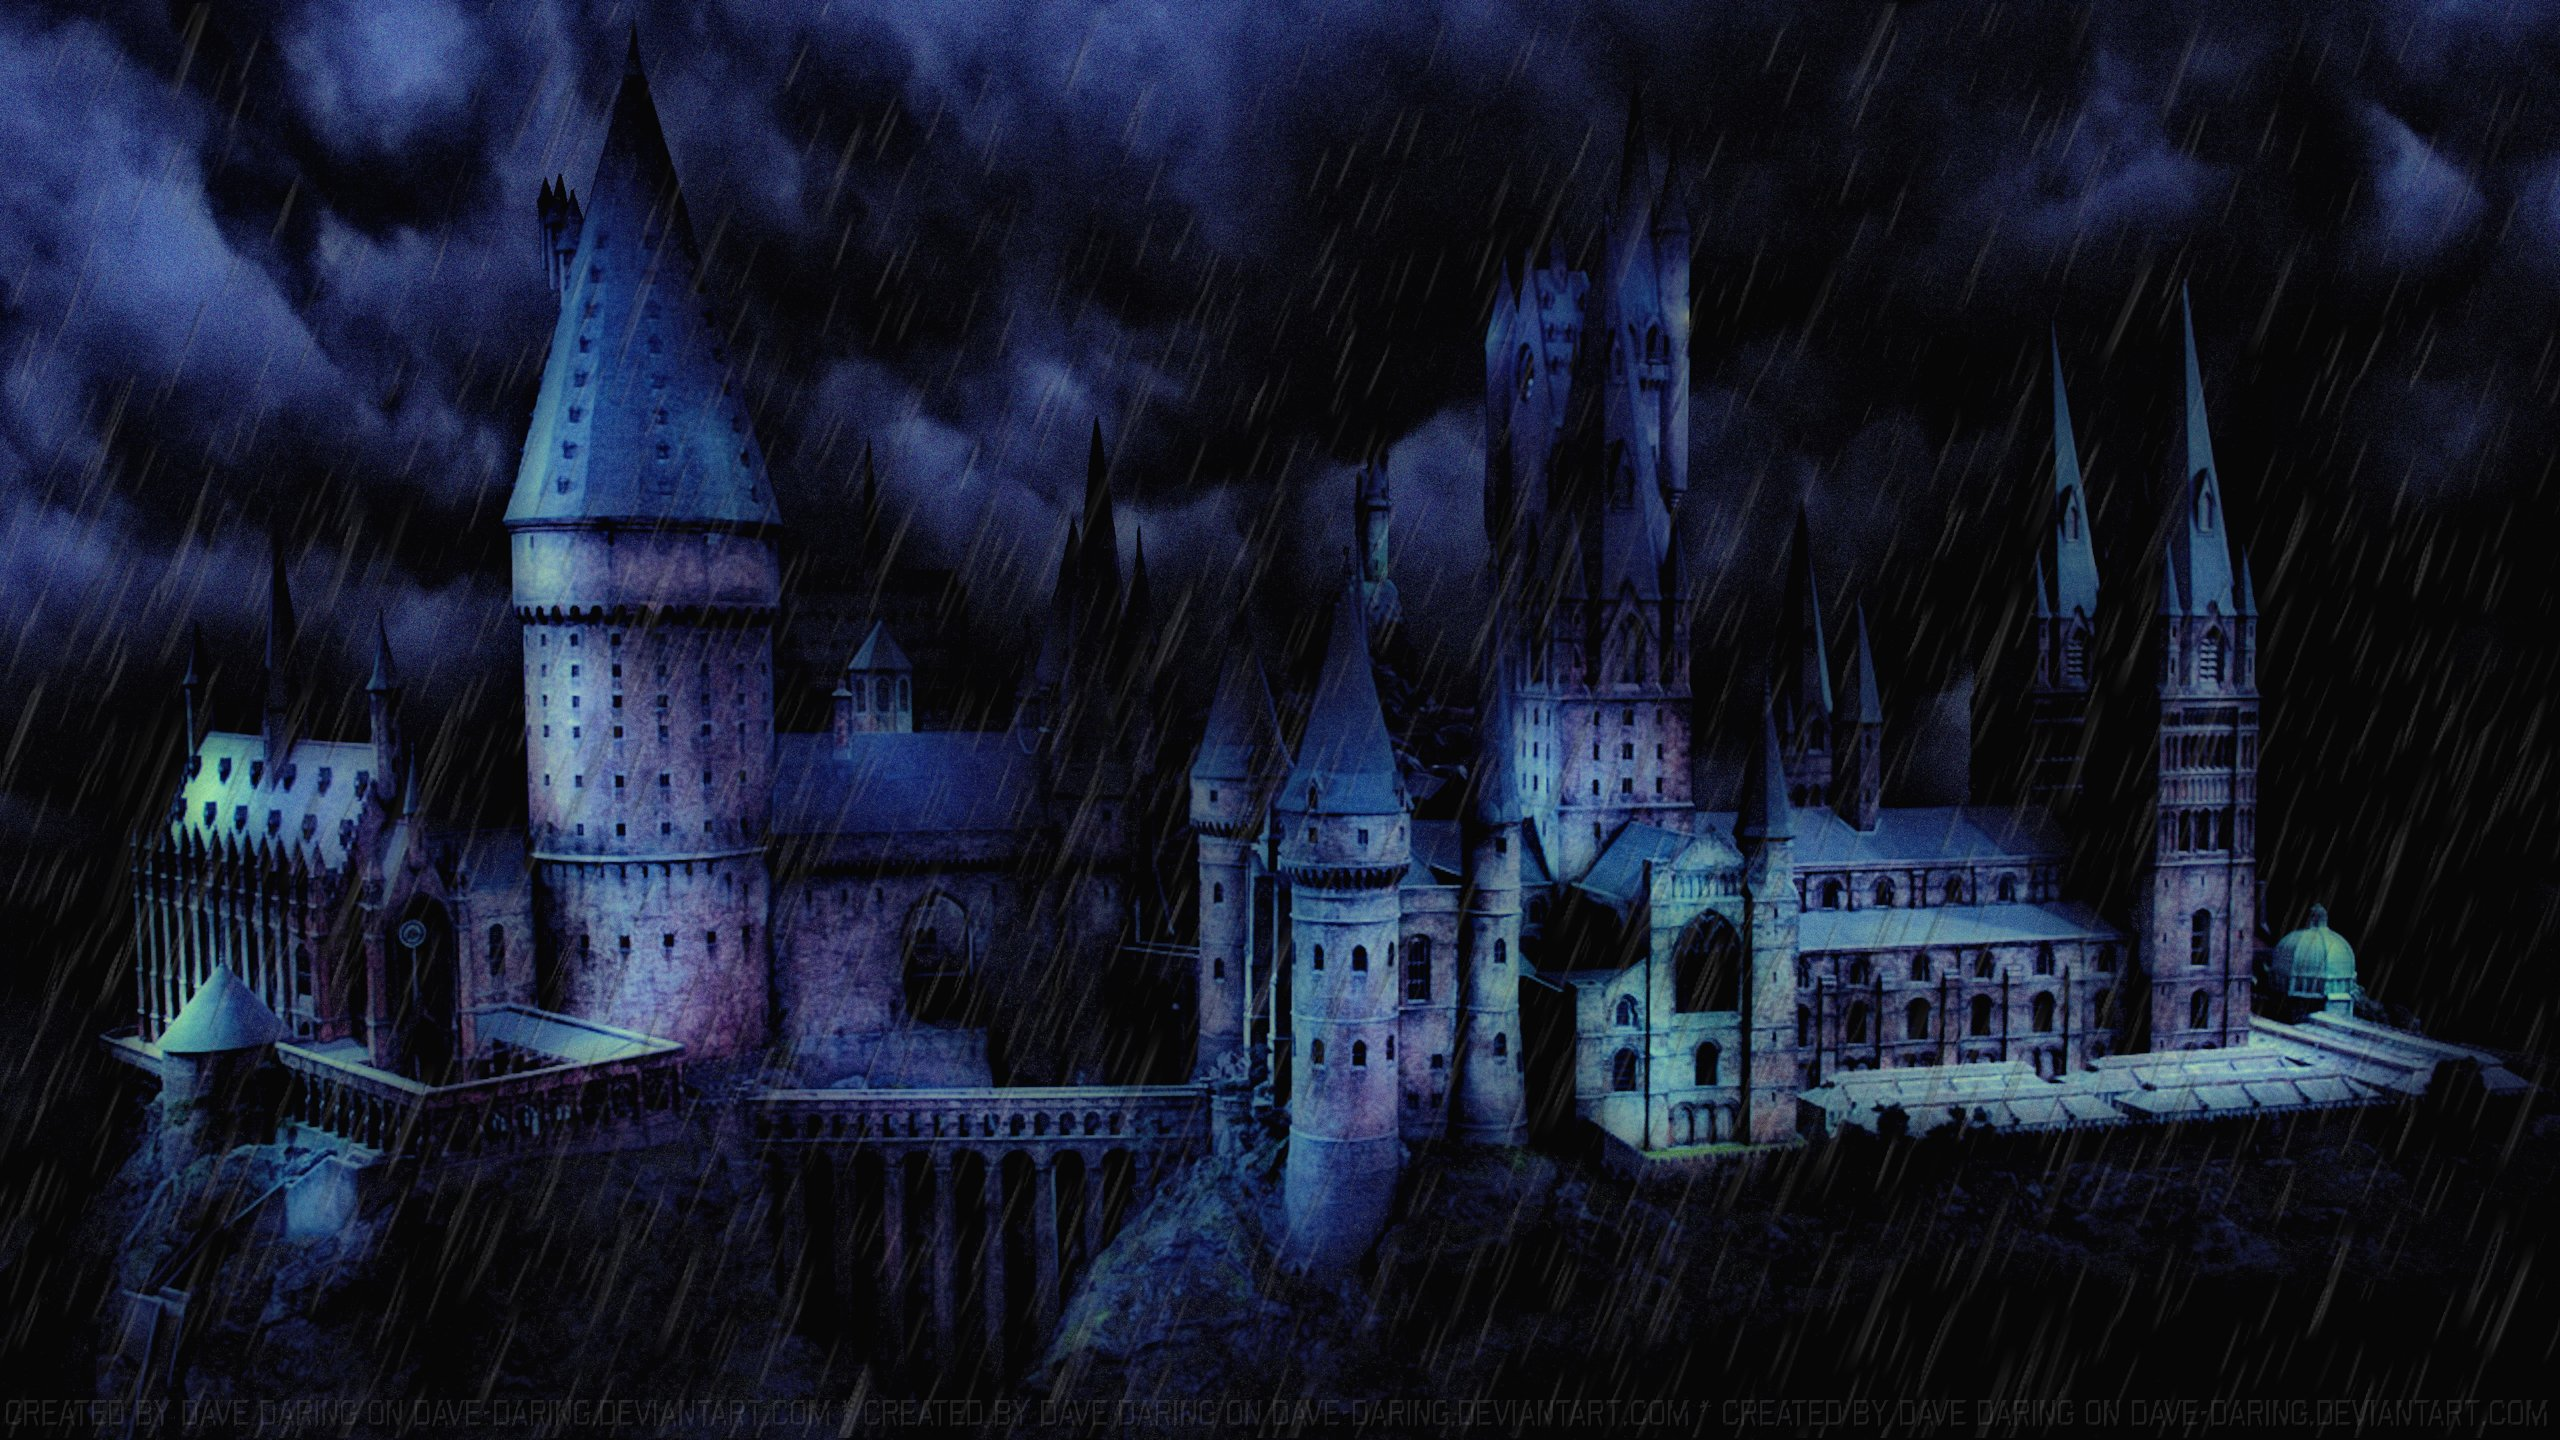 A storm over hogwarts ii by dave daring on deviantart - Hogwarts at night wallpaper ...